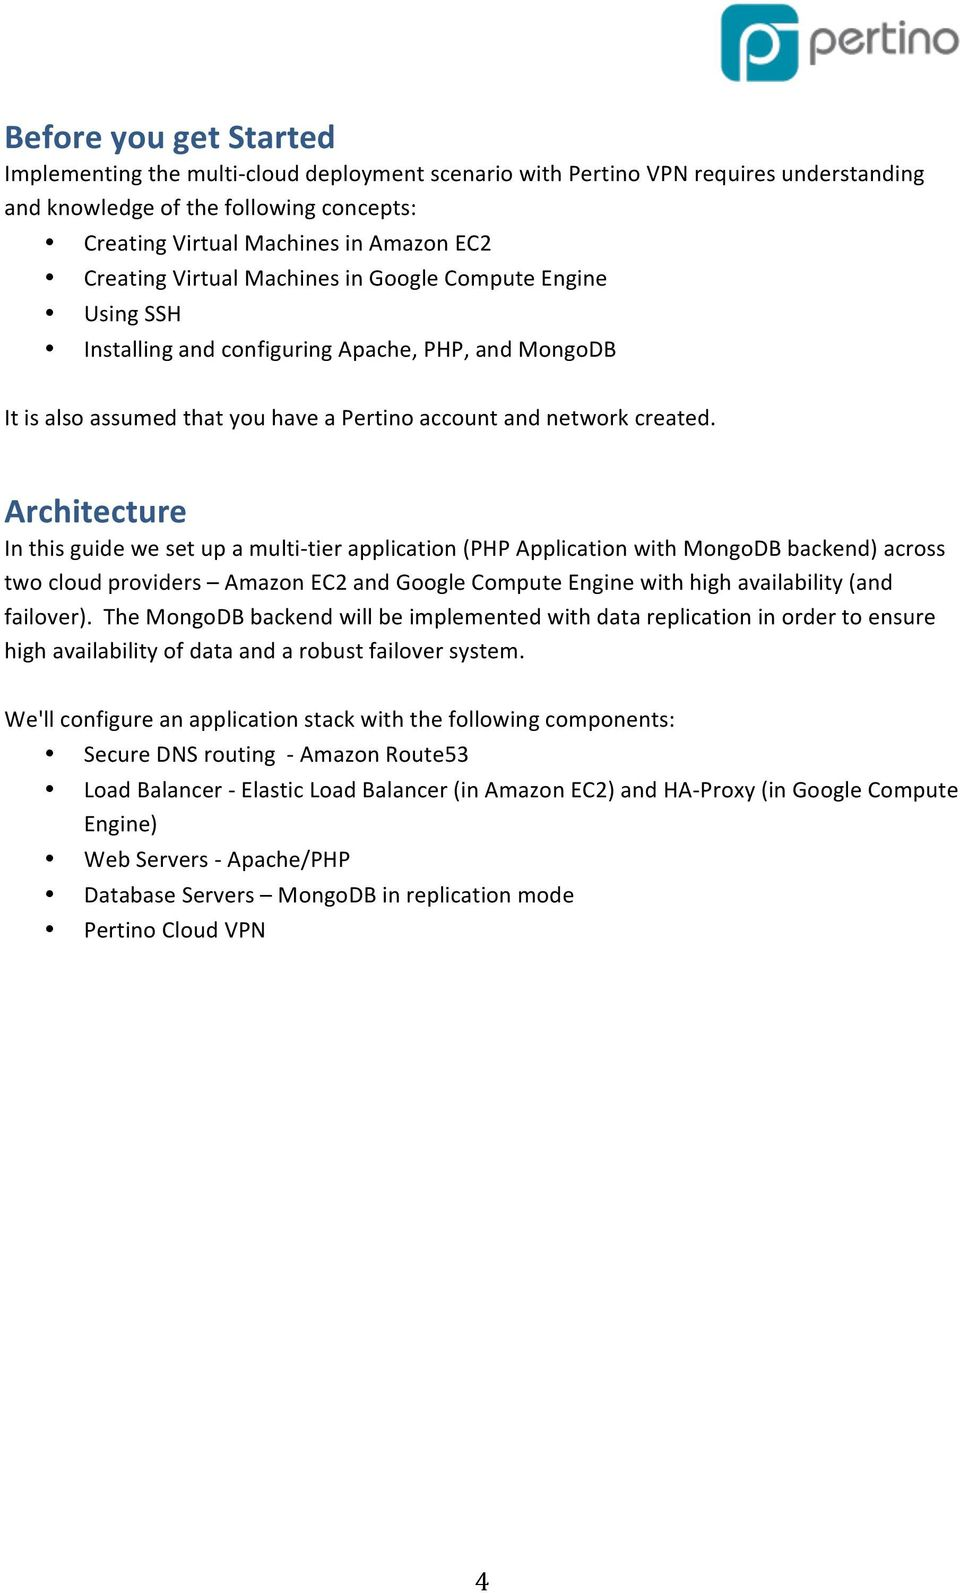 Architecture In this guide we set up a multi- tier application (PHP Application with MongoDB backend) across two cloud providers Amazon EC2 and Google Compute Engine with high availability (and